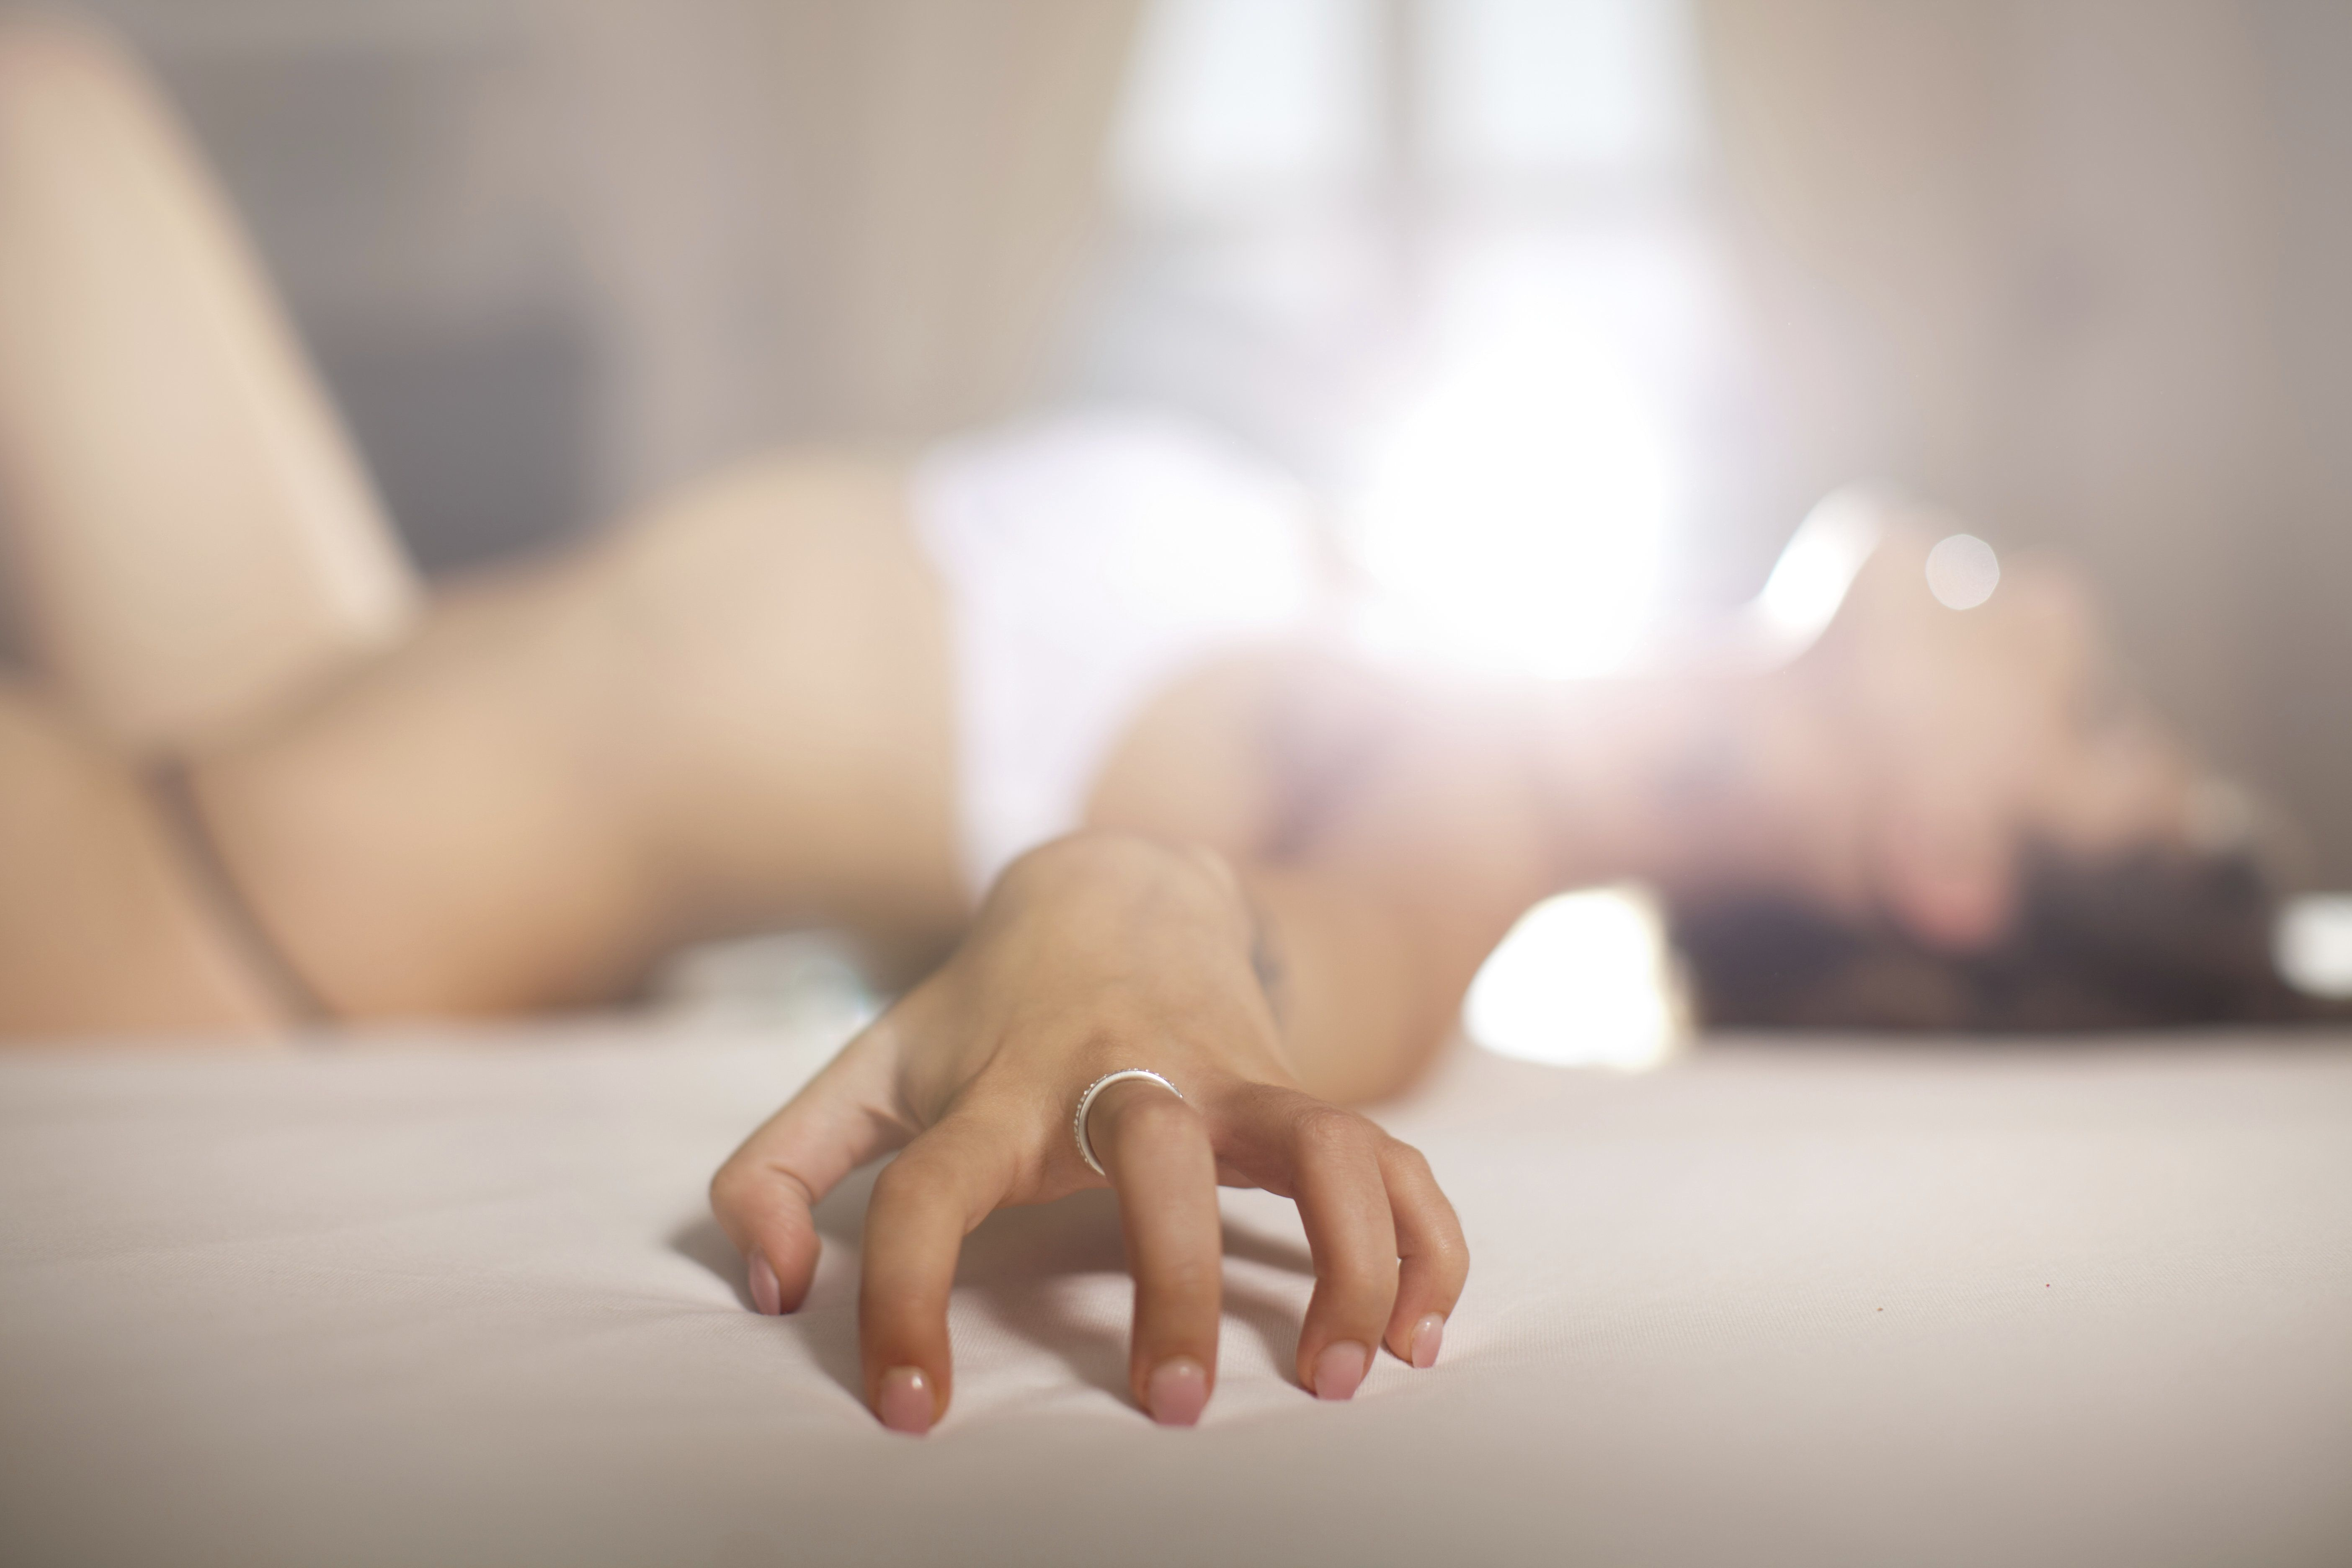 The rhythm of sexual activity might put you into a trance state -- and help you